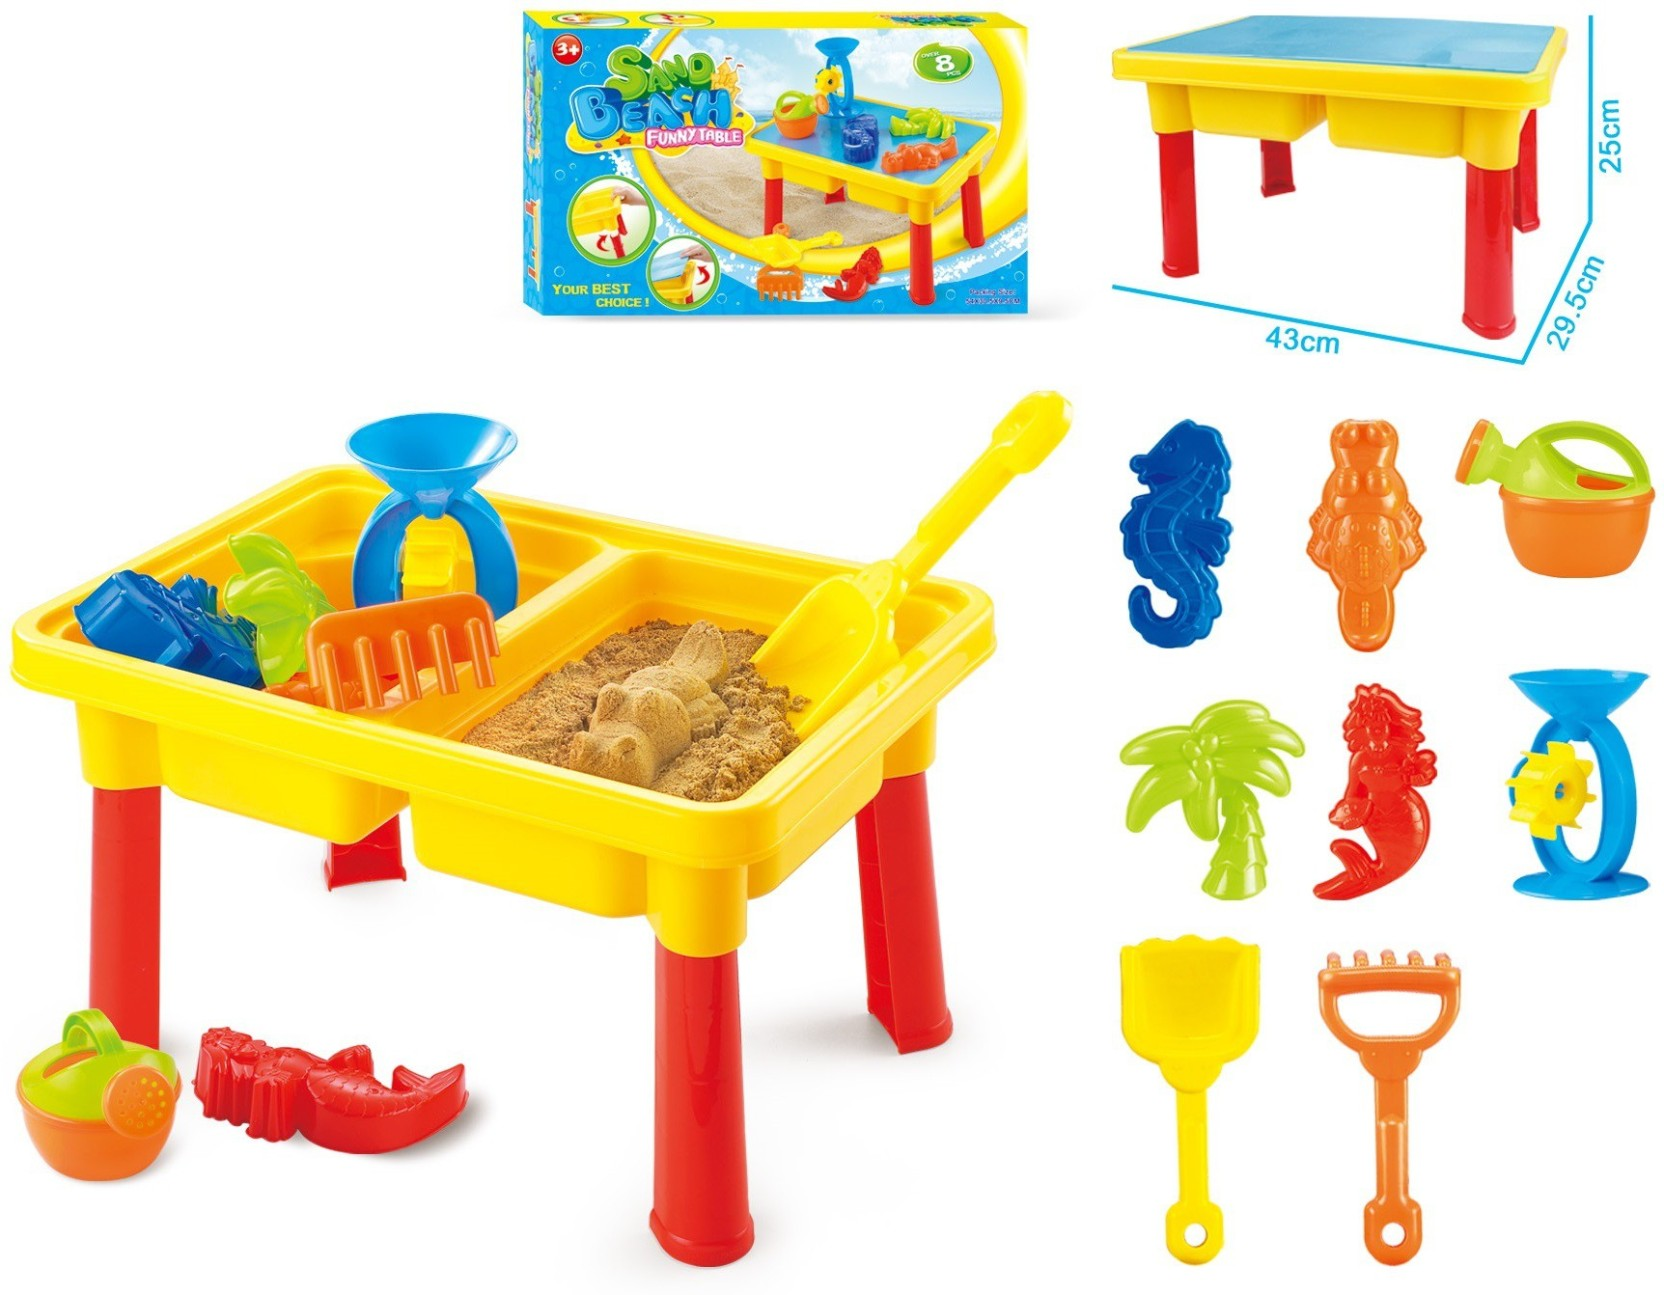 Toys Bhoomi 2 in 1 Beach Sand & Water Play Table for Kids